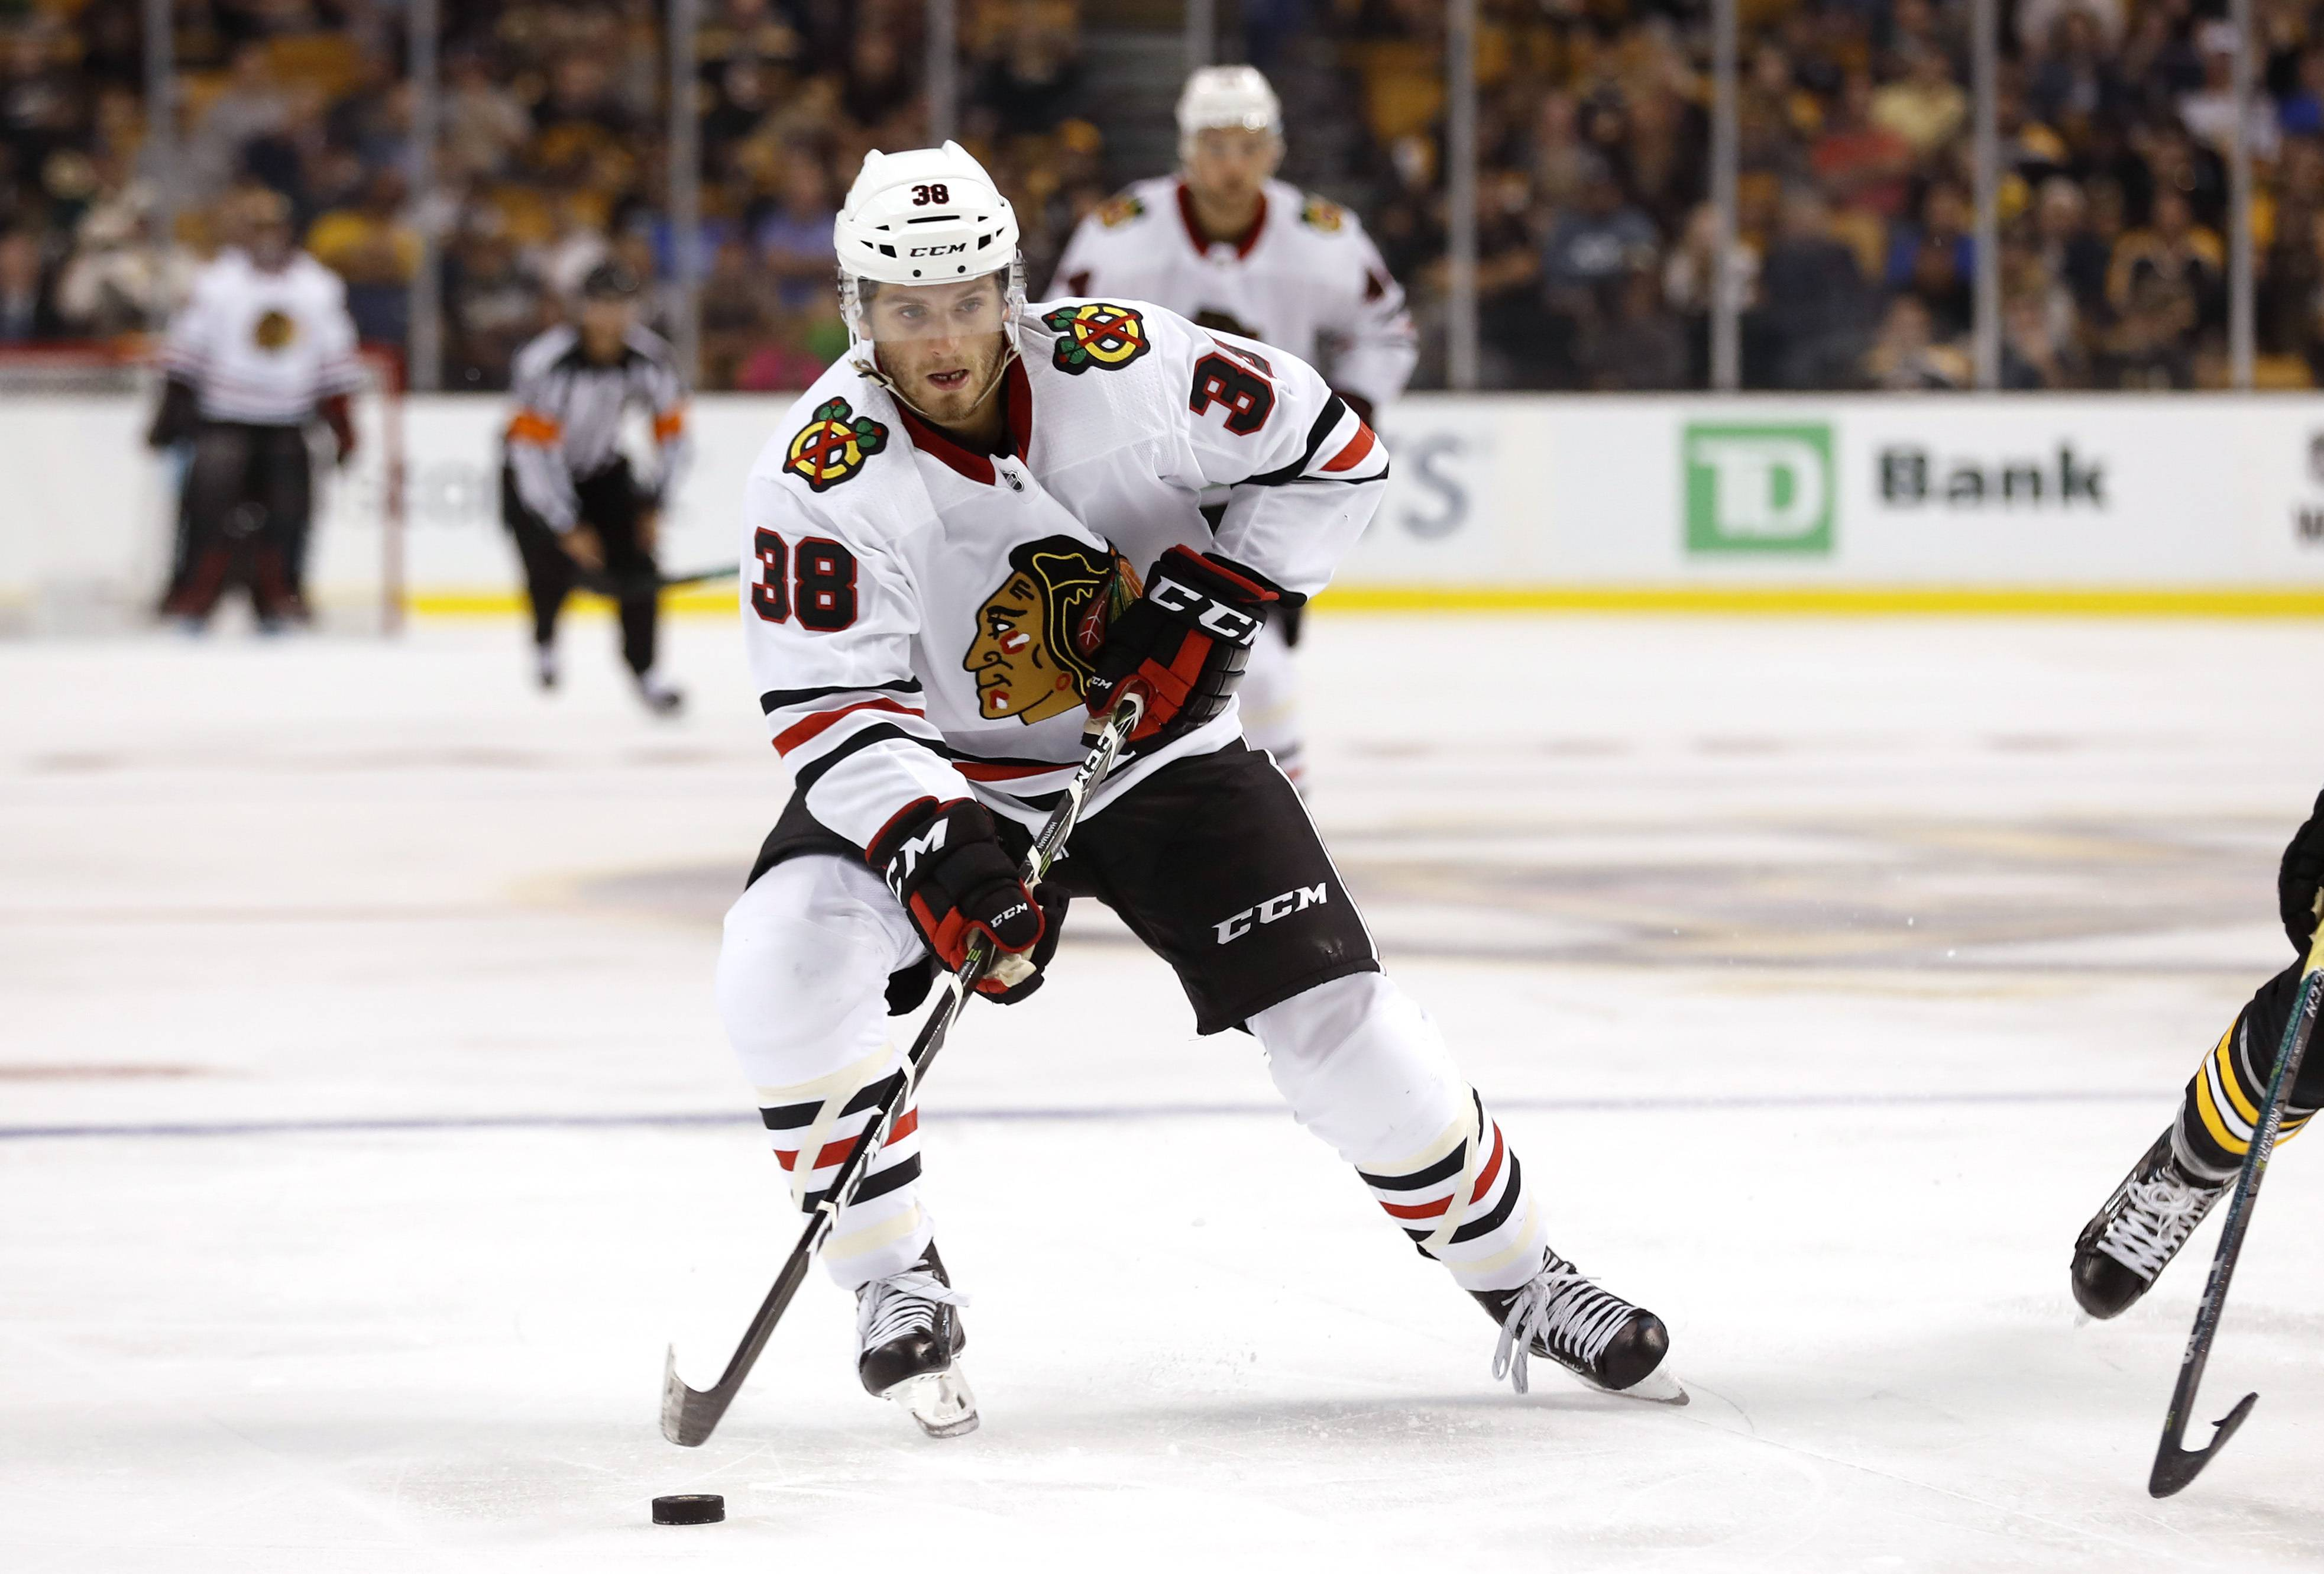 Chicago Blackhawks' Ryan Hartman during the third period of the Bruins 4-2 win over the Chicago Blackhawks in an NHL preseason hockey game in Boston, Monday, Sept. 25, 2017.